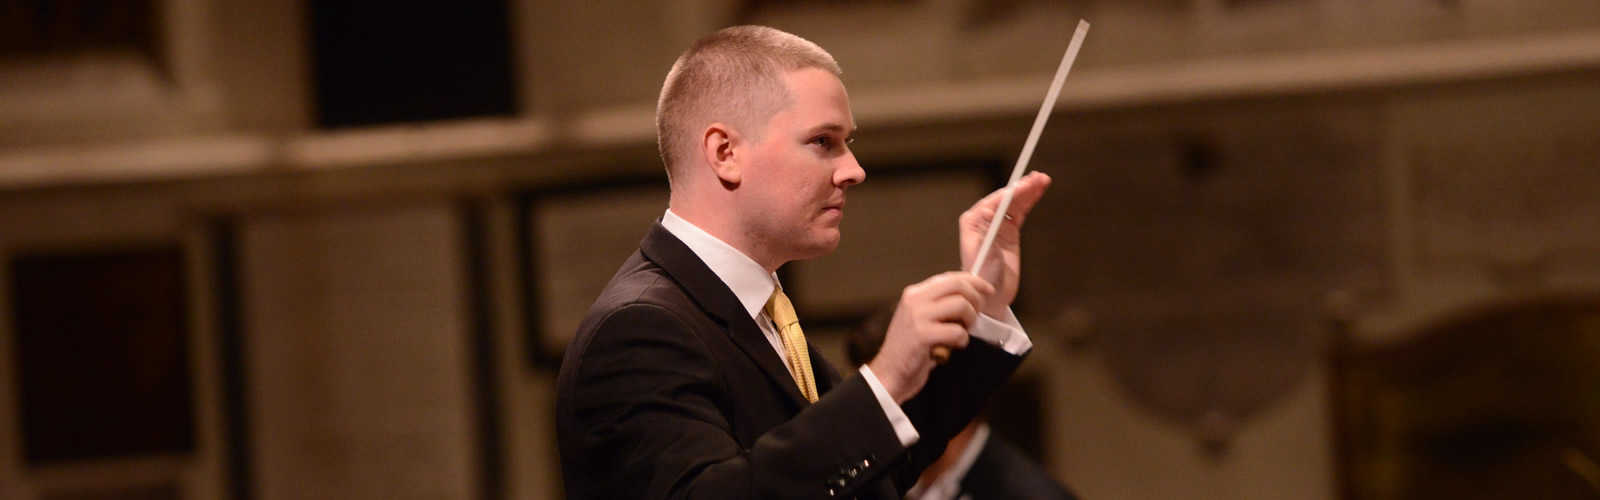 Find out more about our Music Director